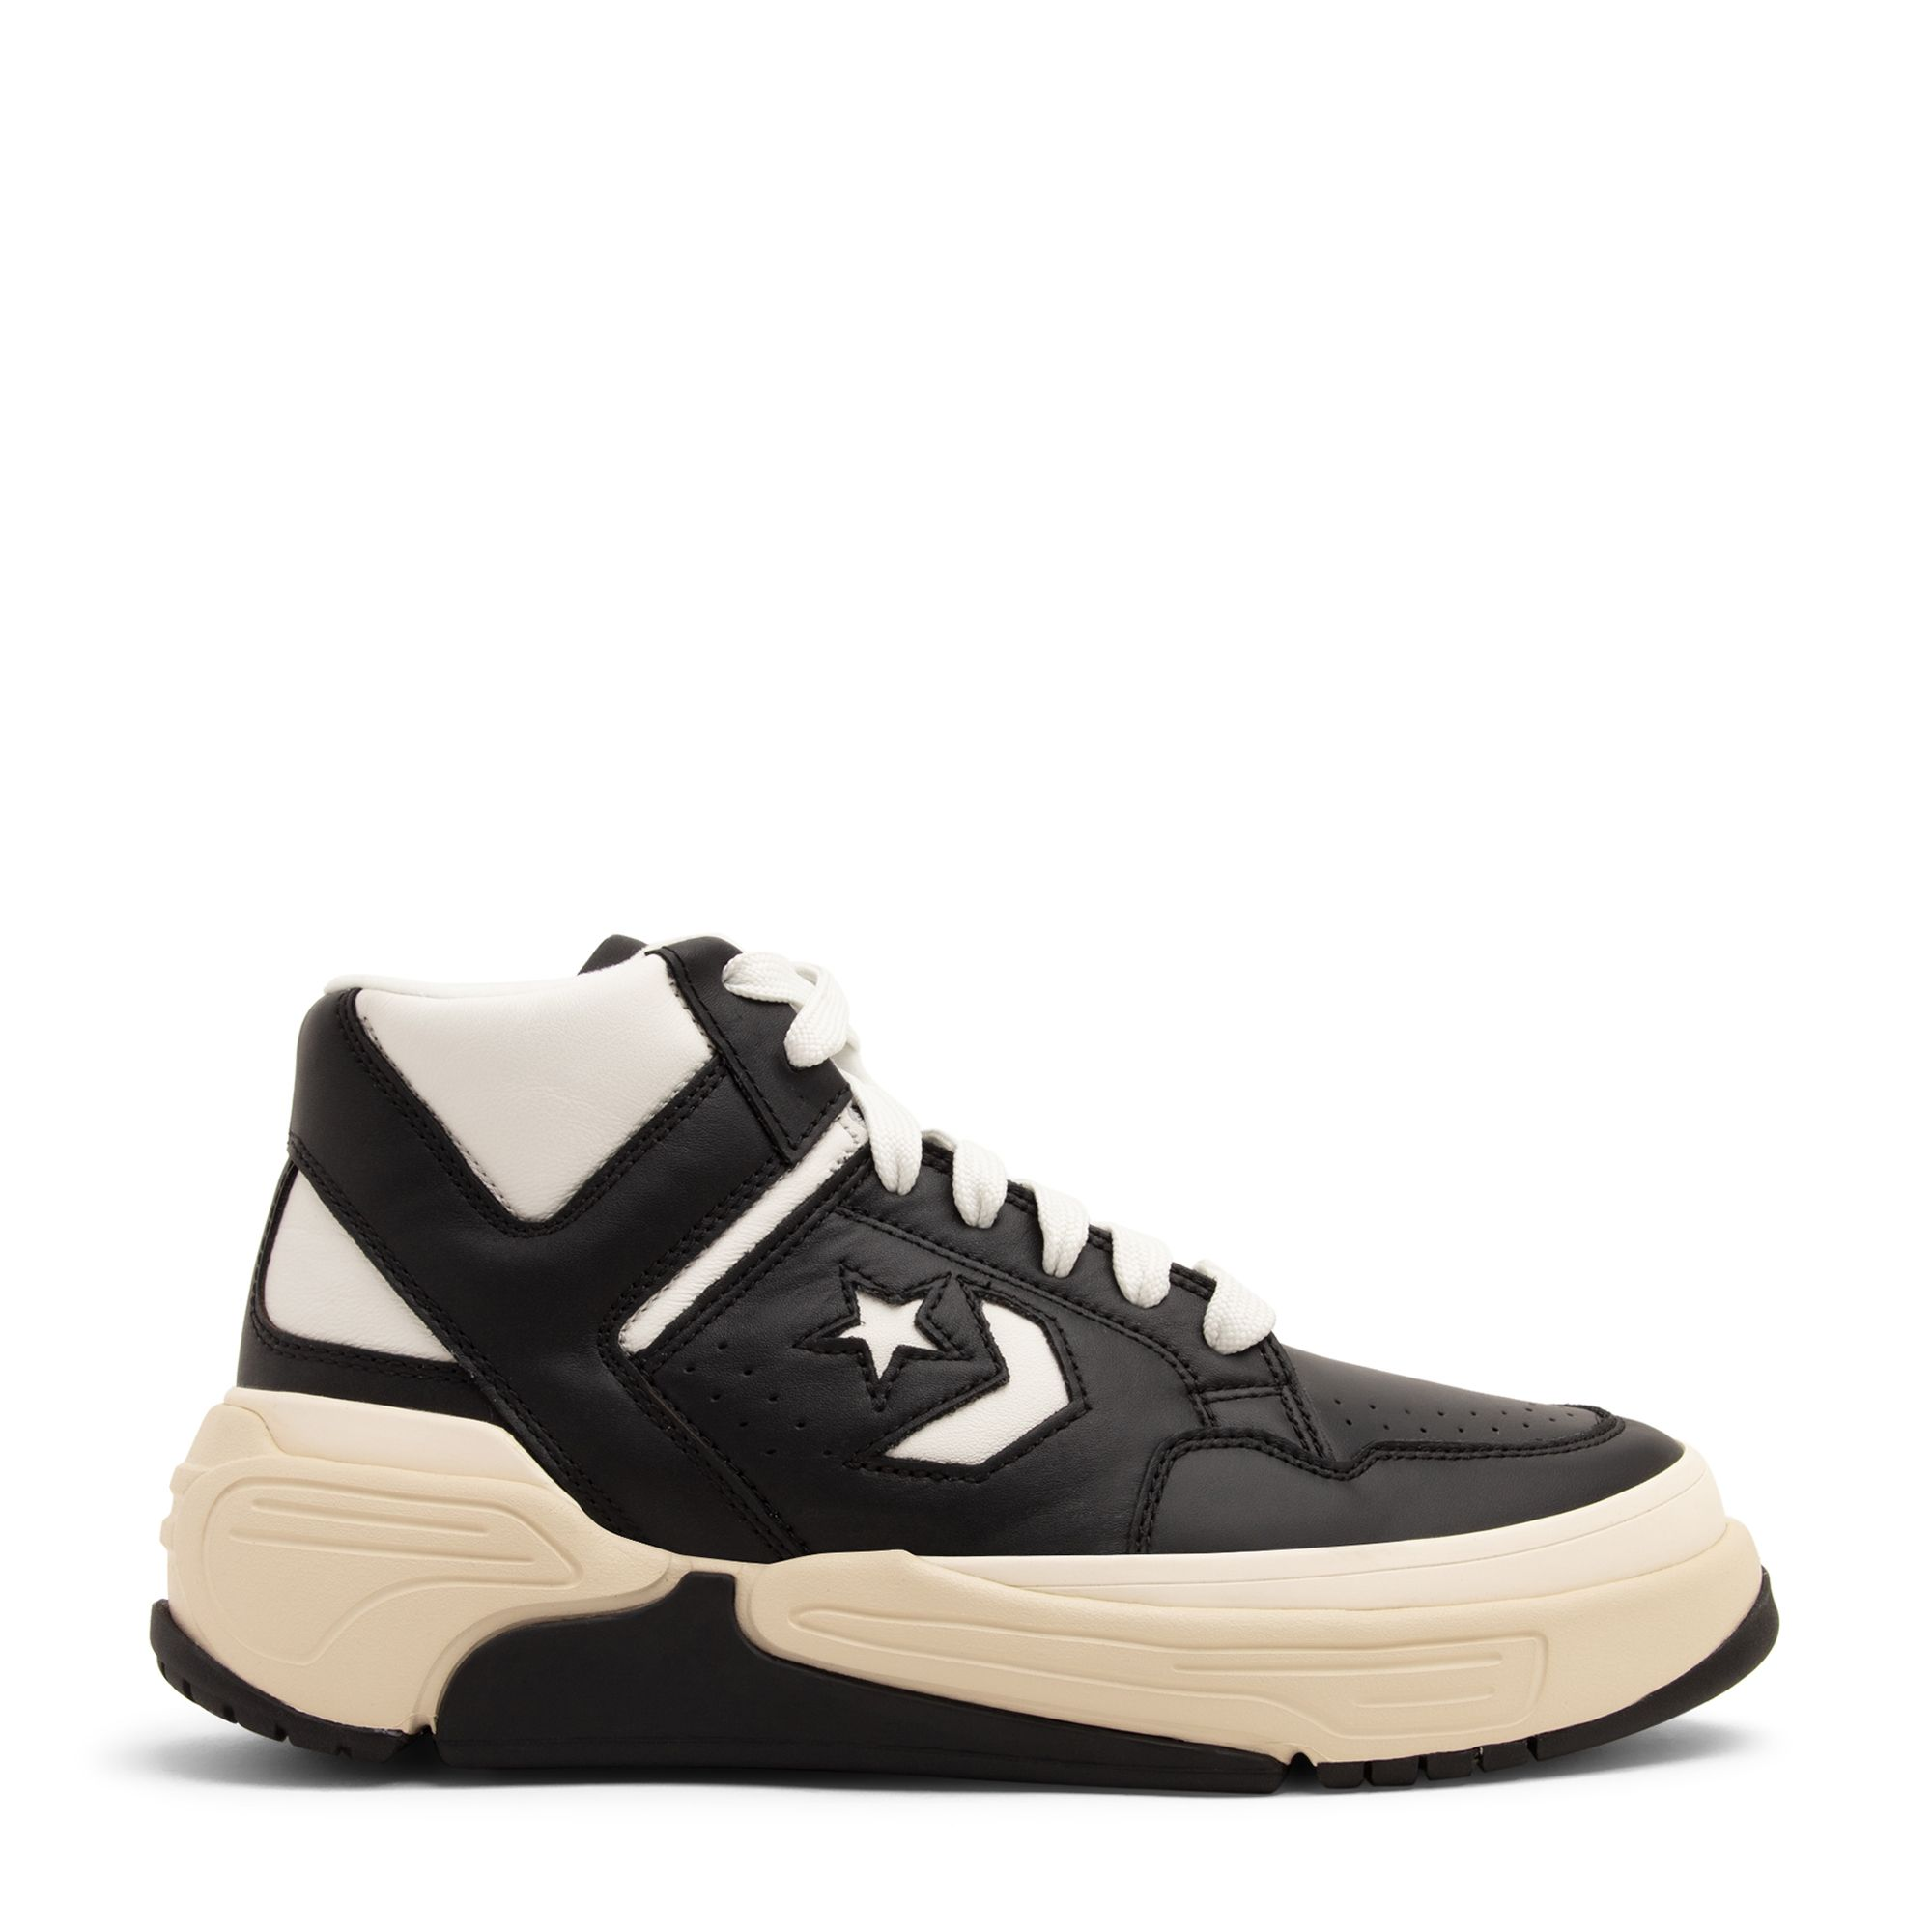 Weapon CX sneakers